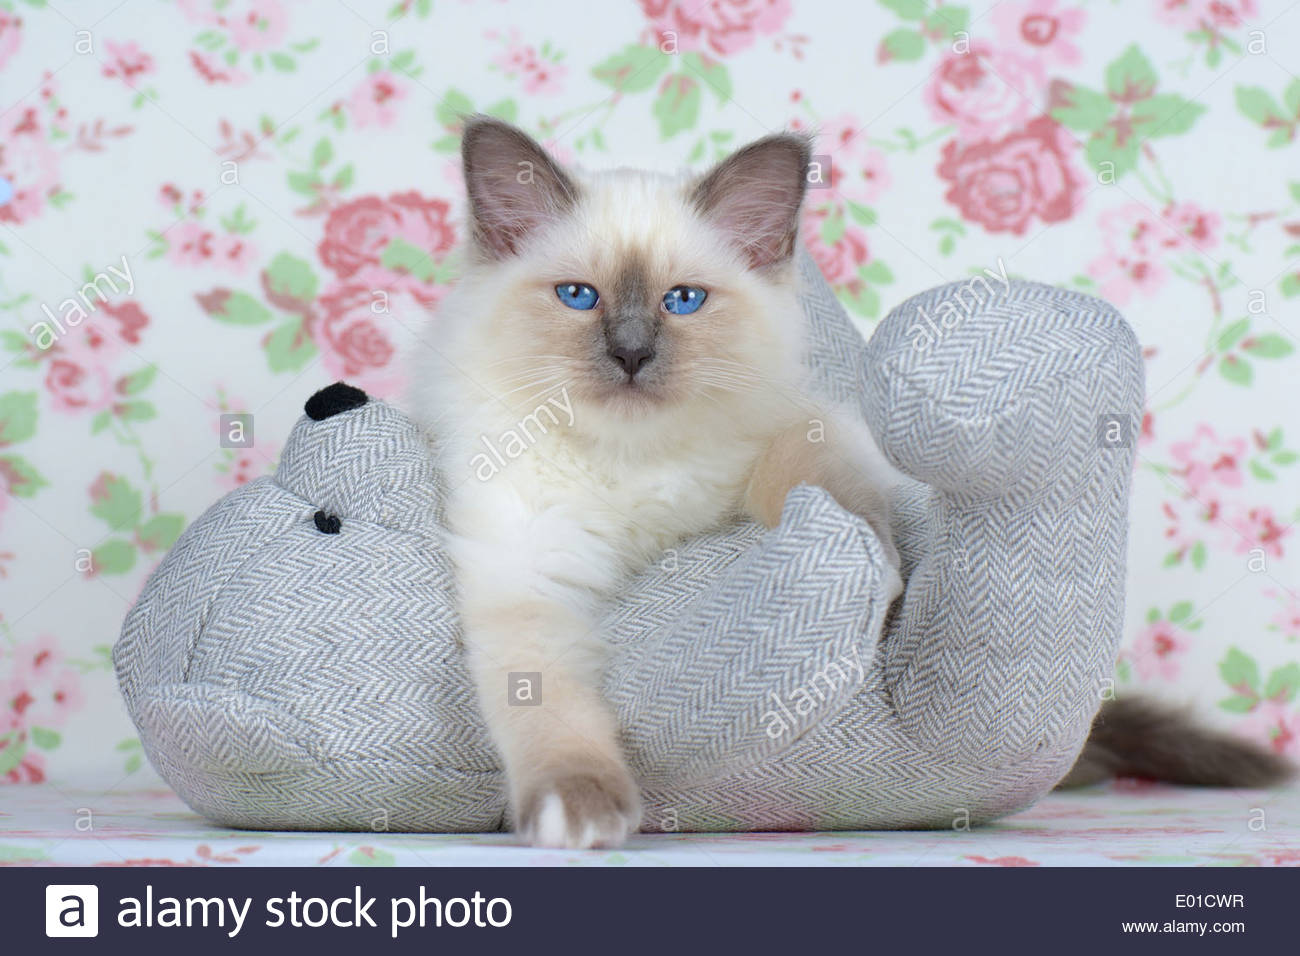 Cute Kitten Teddy Bear Stock Photos & Cute Kitten Teddy Bear Stock.